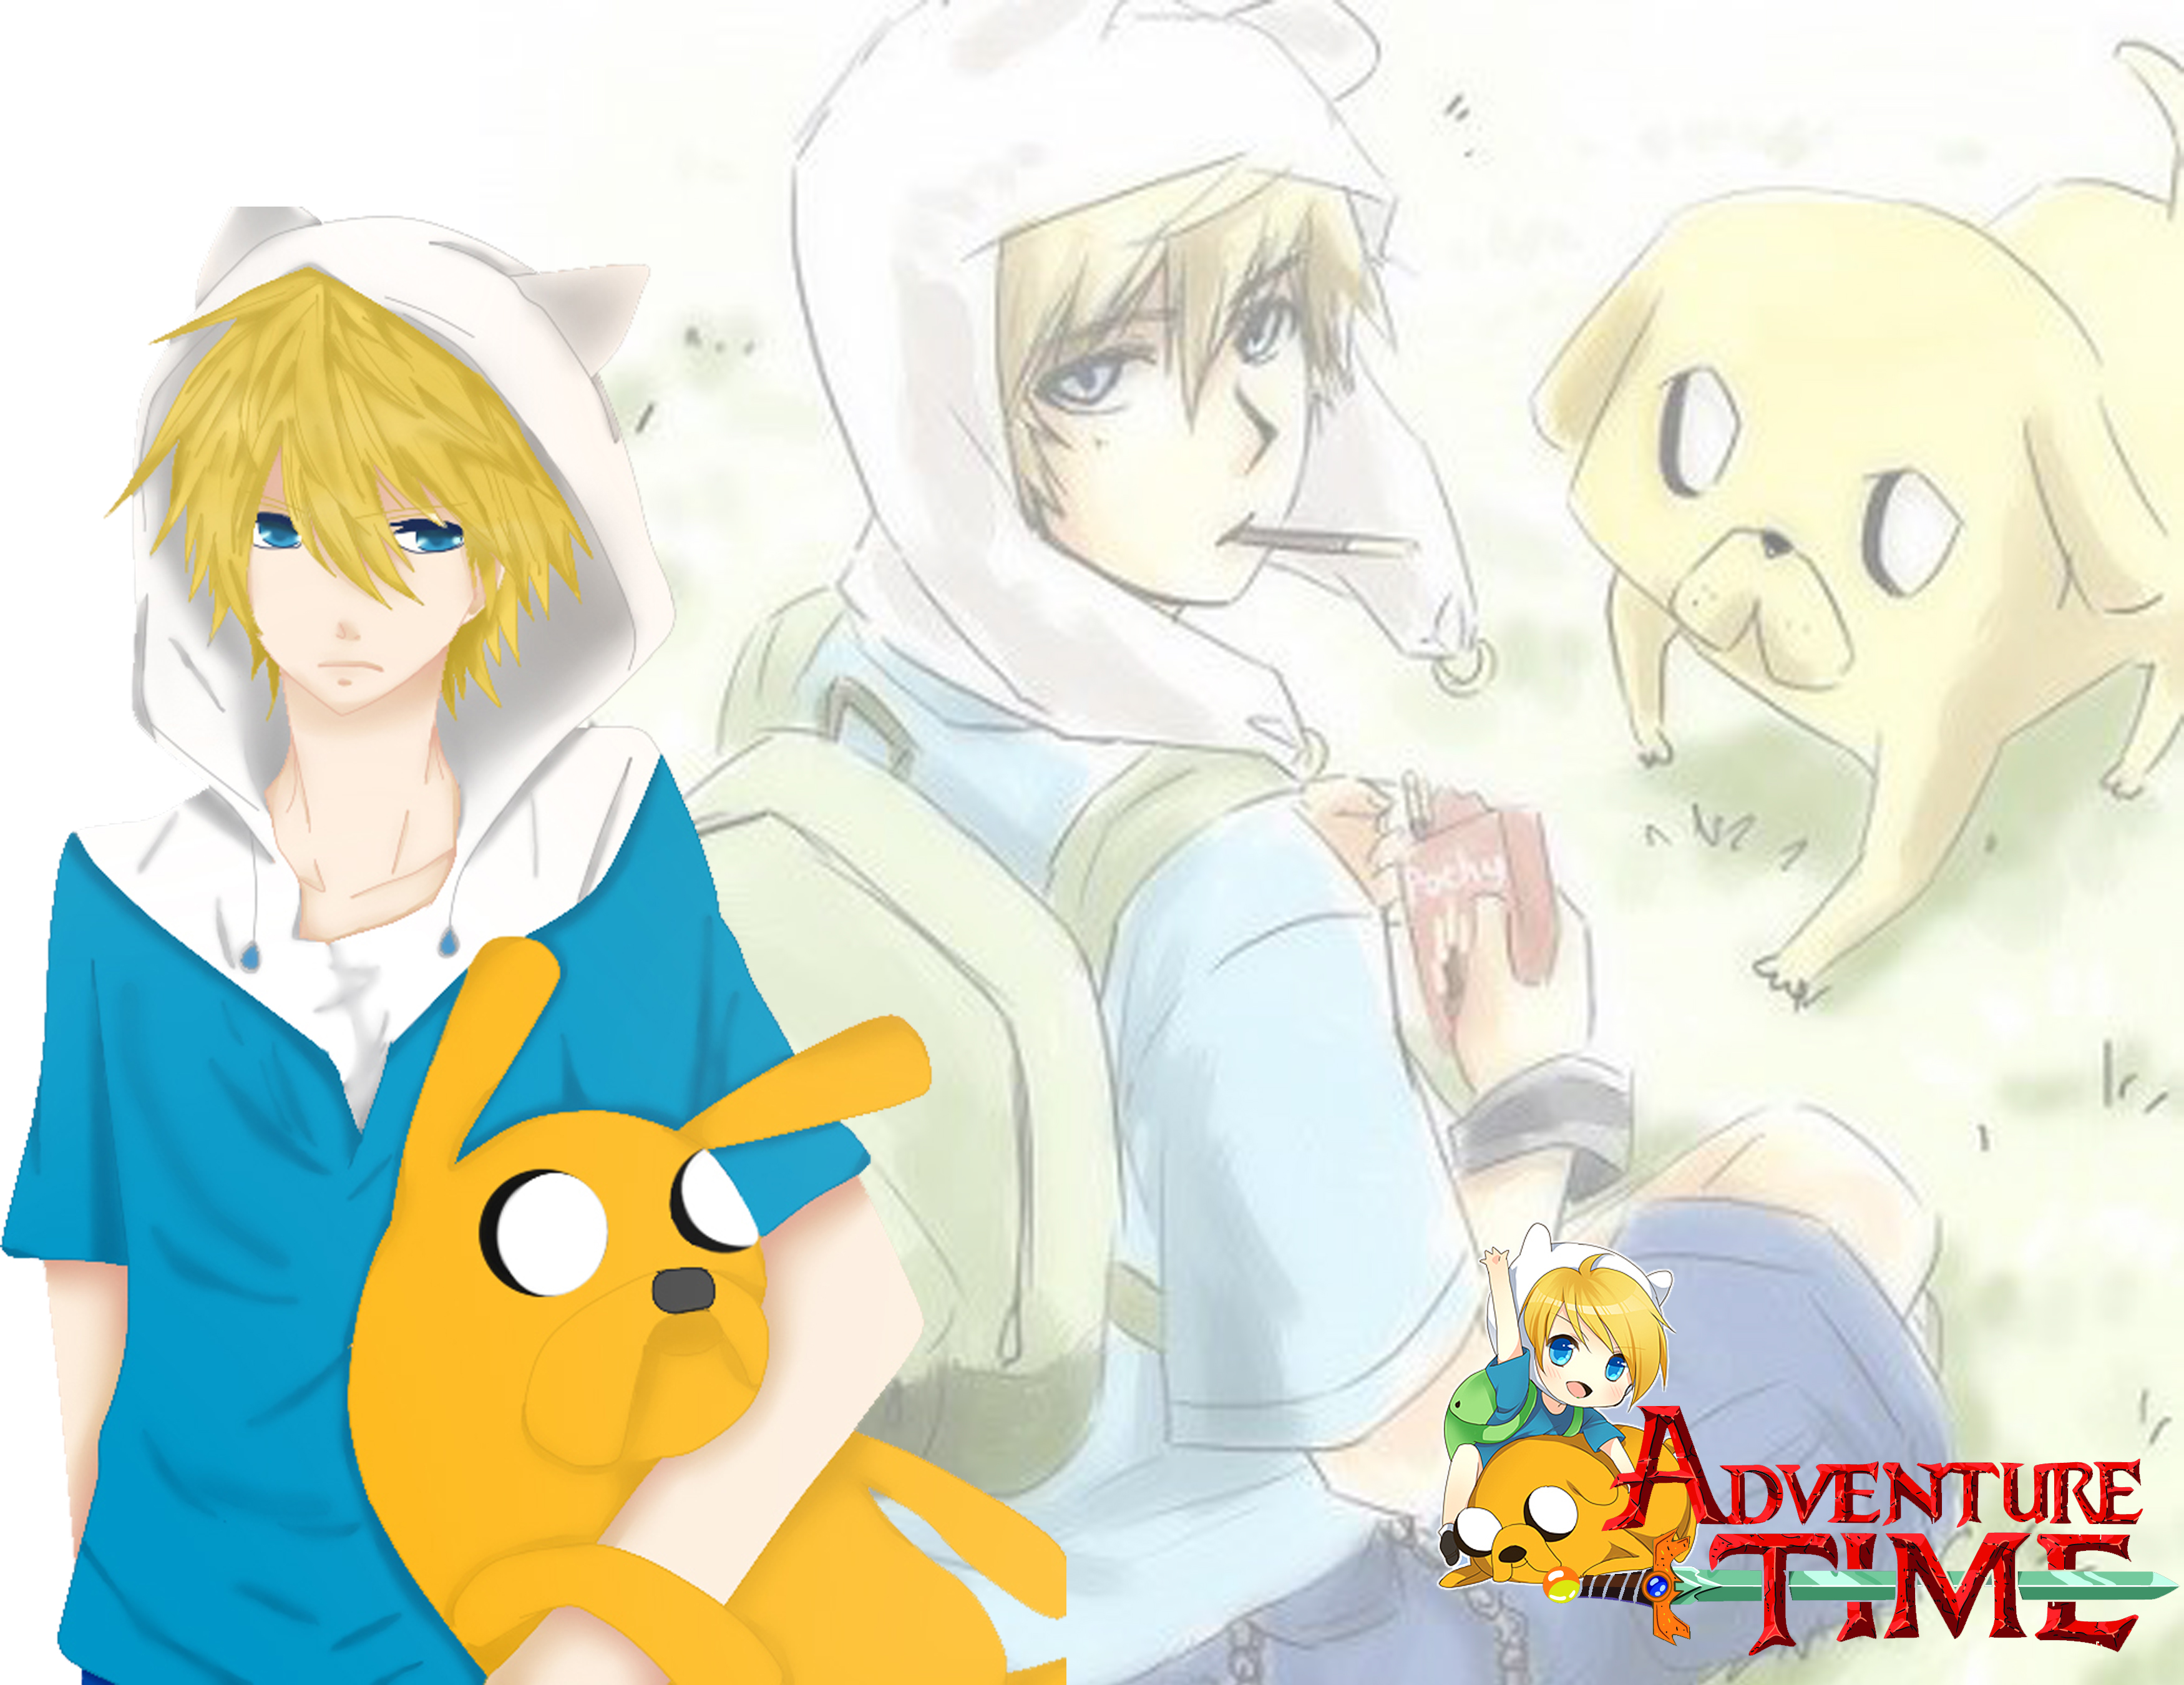 Anime Adventure Time Pictures finn and jake anime - adventure time with finn and jake